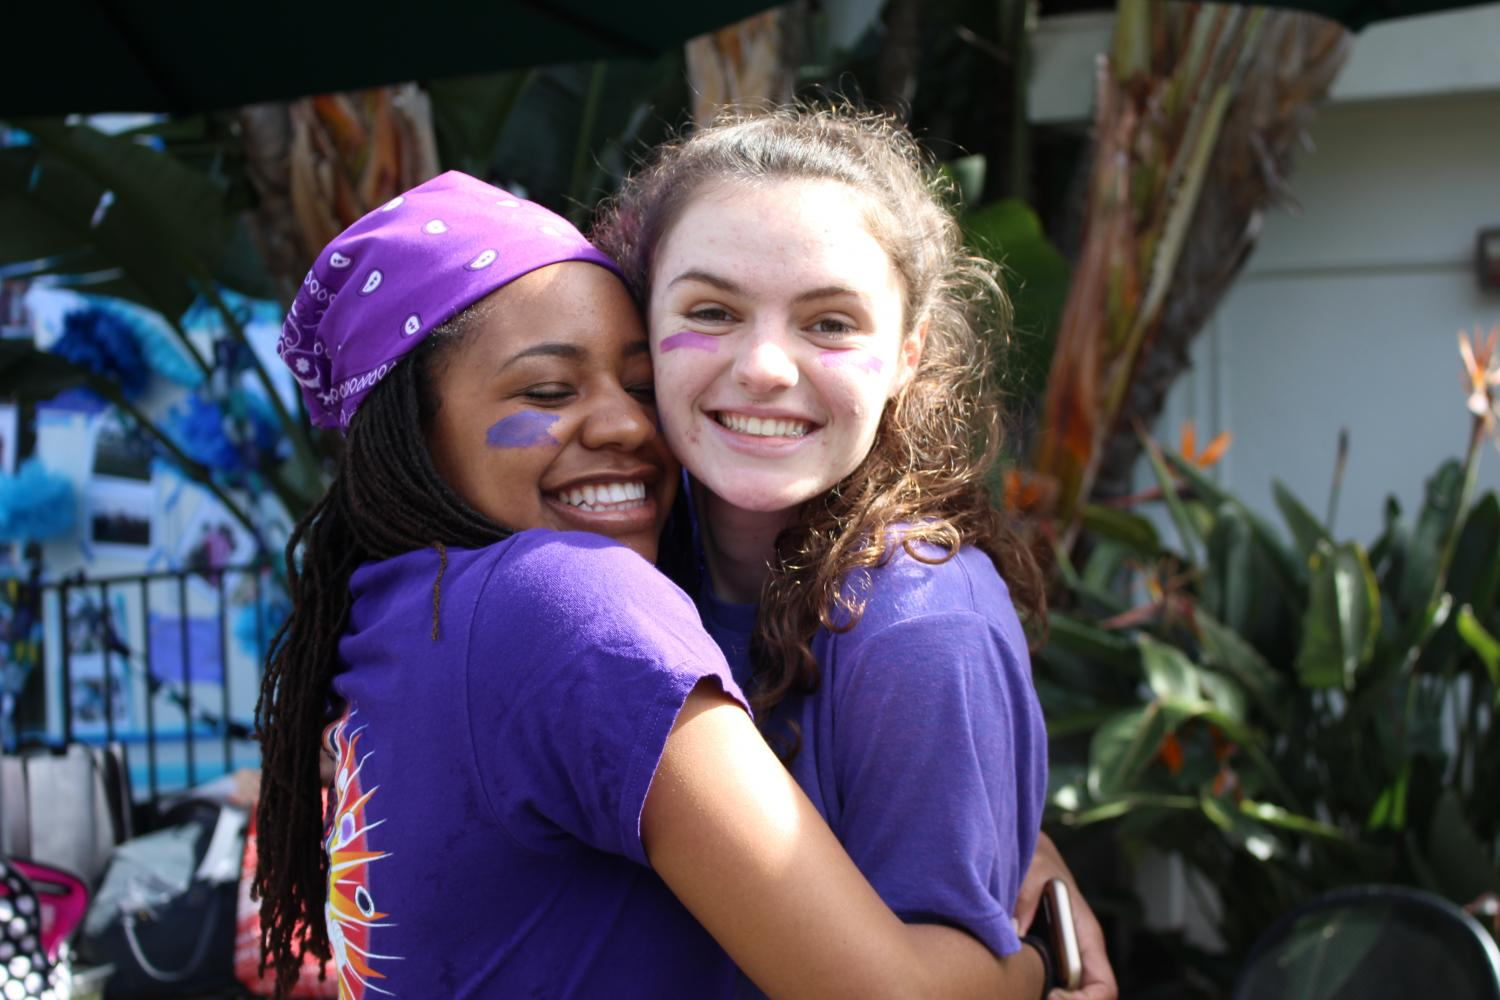 Cydney Davis '18 and Rachael Boehm '18 embrace during Color Wars 2017. The 2017-2018 school year's theme is love.